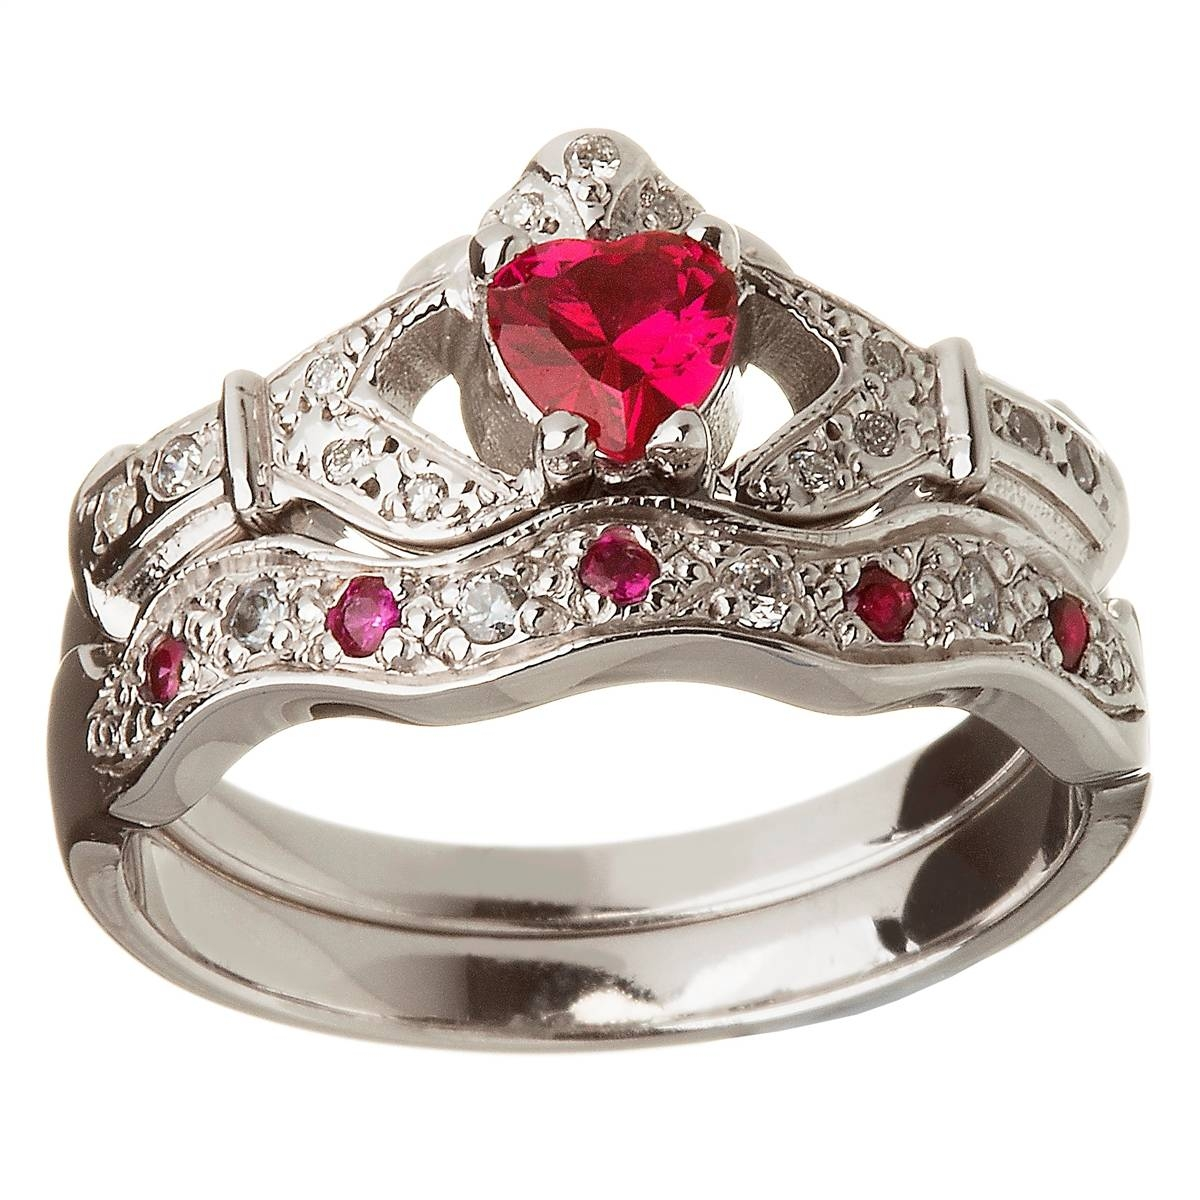 14k White Gold Ruby Set Heart Claddagh Ring & Wedding Ring Set Throughout Claddagh Diamond Engagement Rings (View 7 of 15)